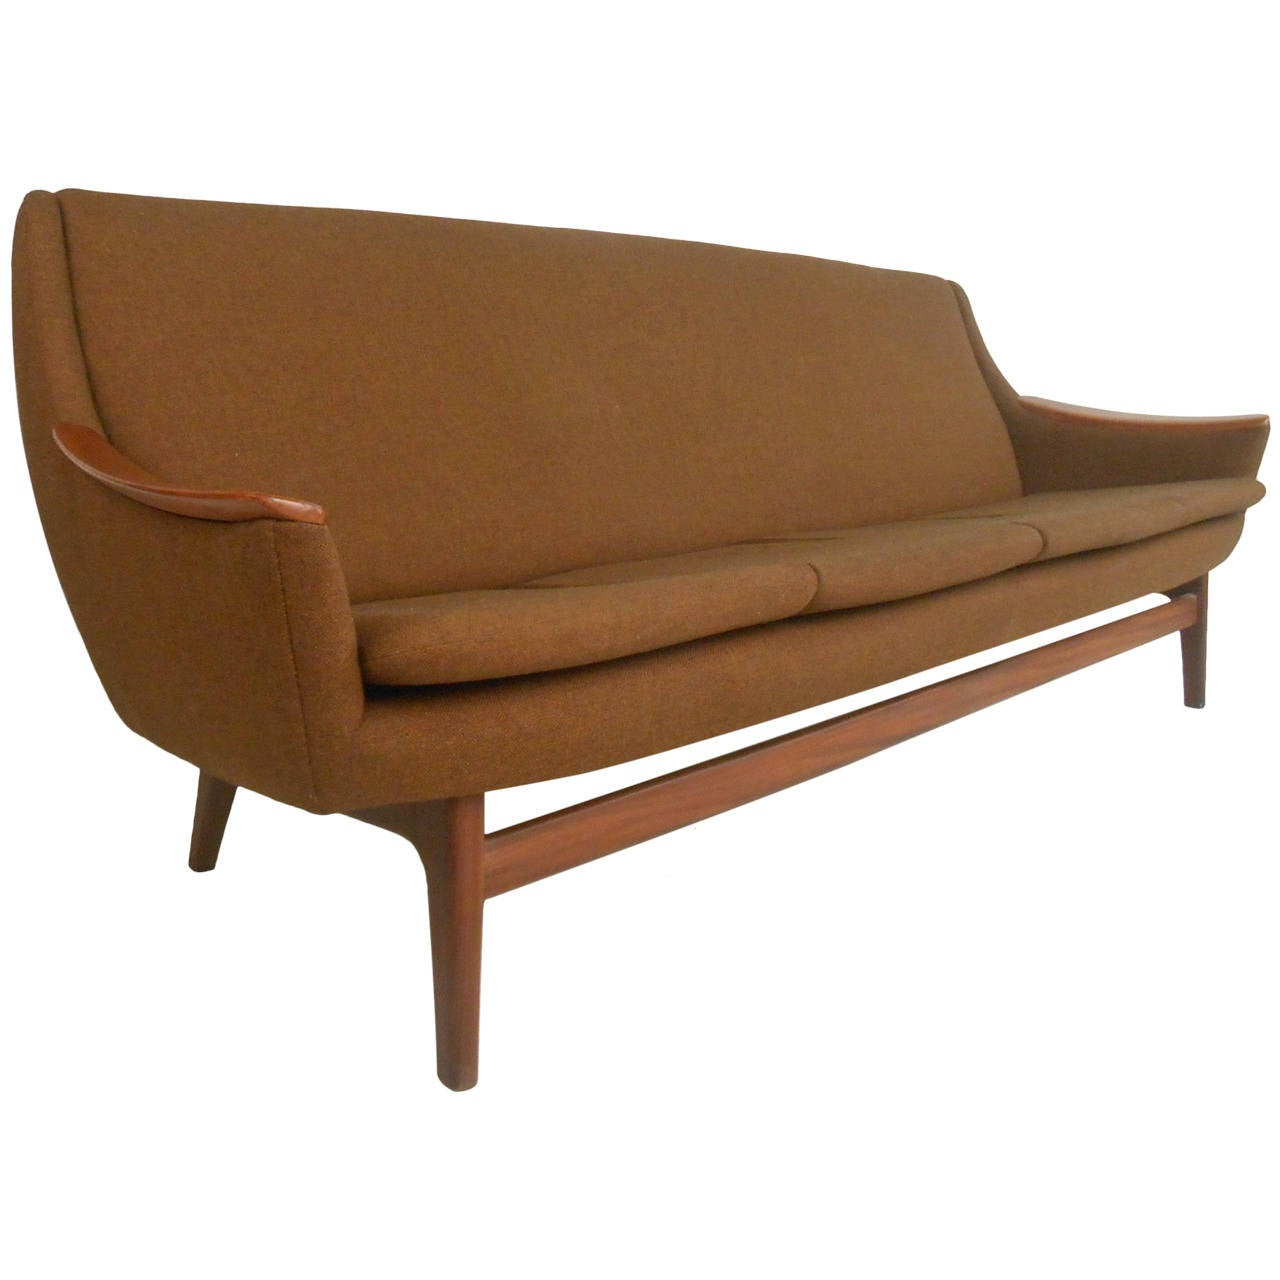 Long scandinavian modern sofa for sale at 1stdibs for Modern sofas for sale